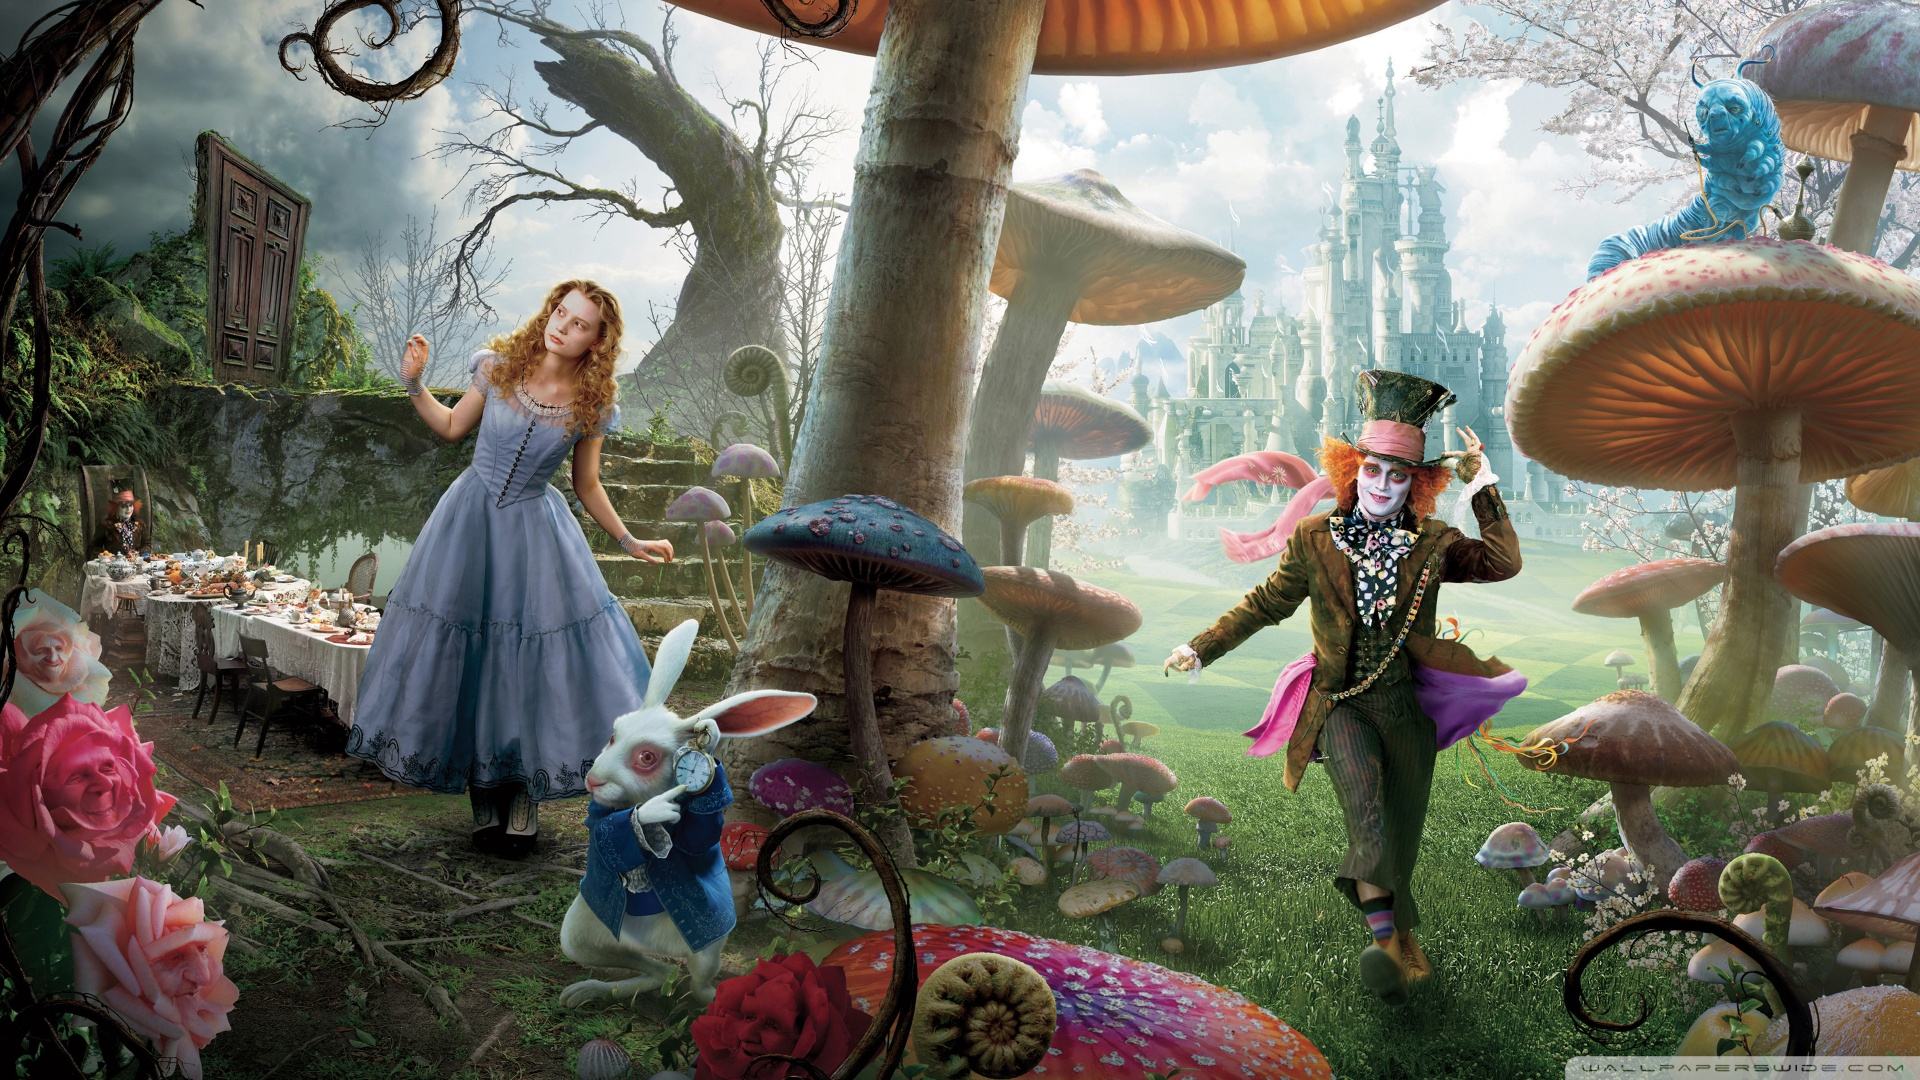 Alice-in-Wonderland-1920x1080-wallpaper-wpc9202279